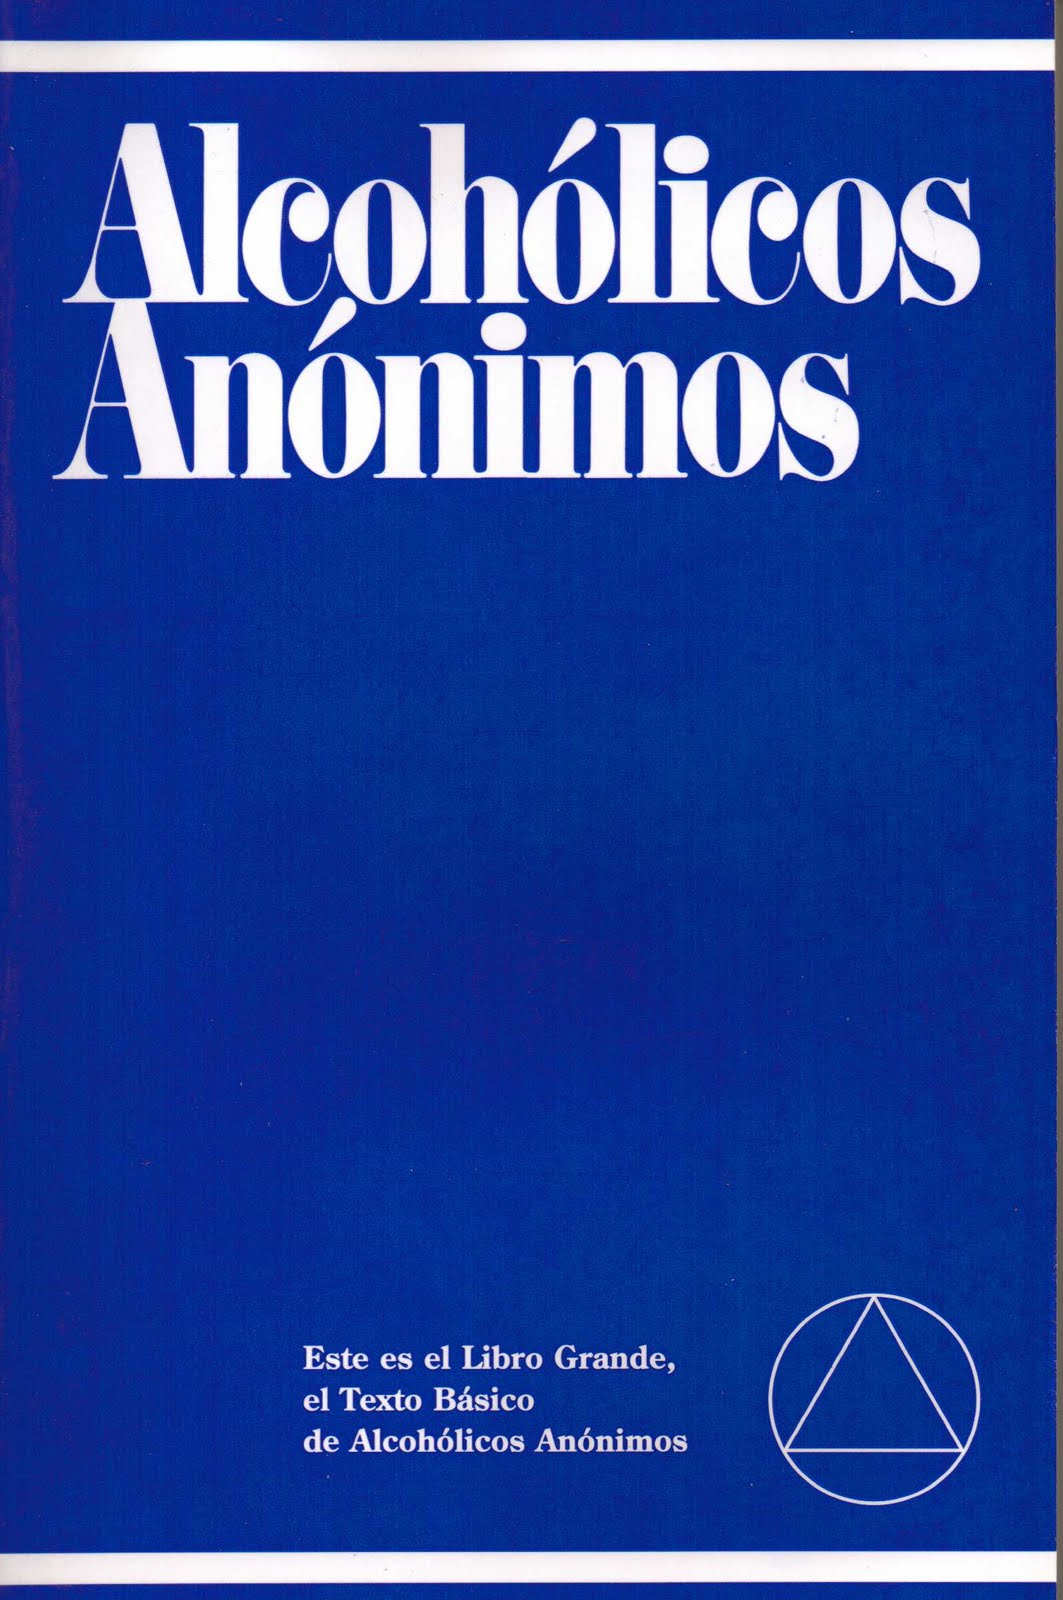 Miss You Libro Alcoholicos Anonimos Libro Azul Ebook Download